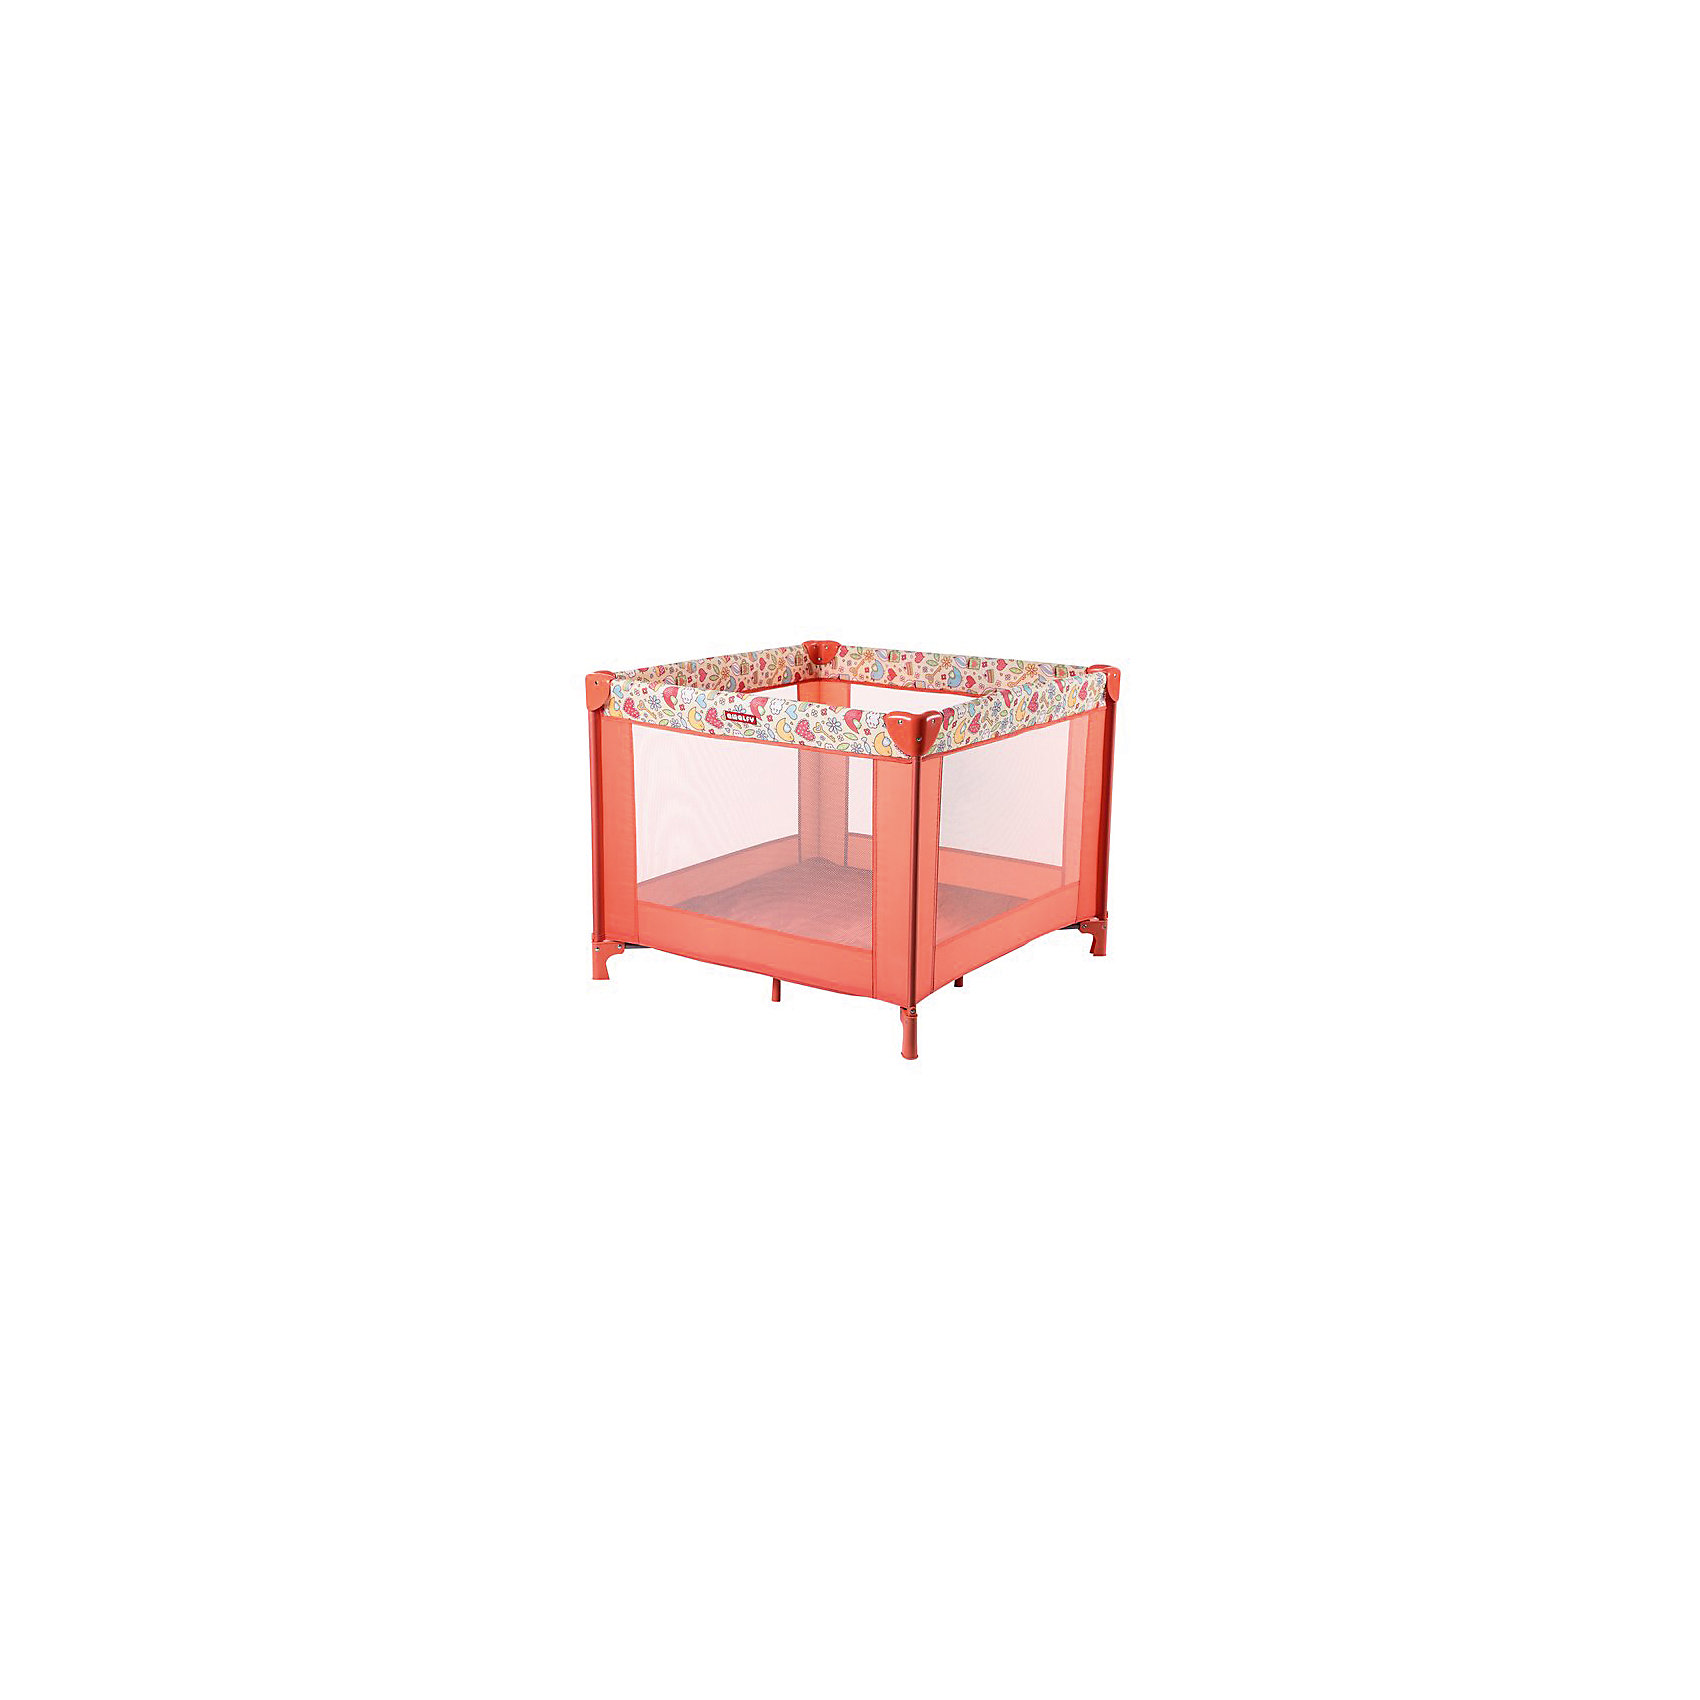 ������� ����� Amalfy HB-8090, Happy Baby, coral